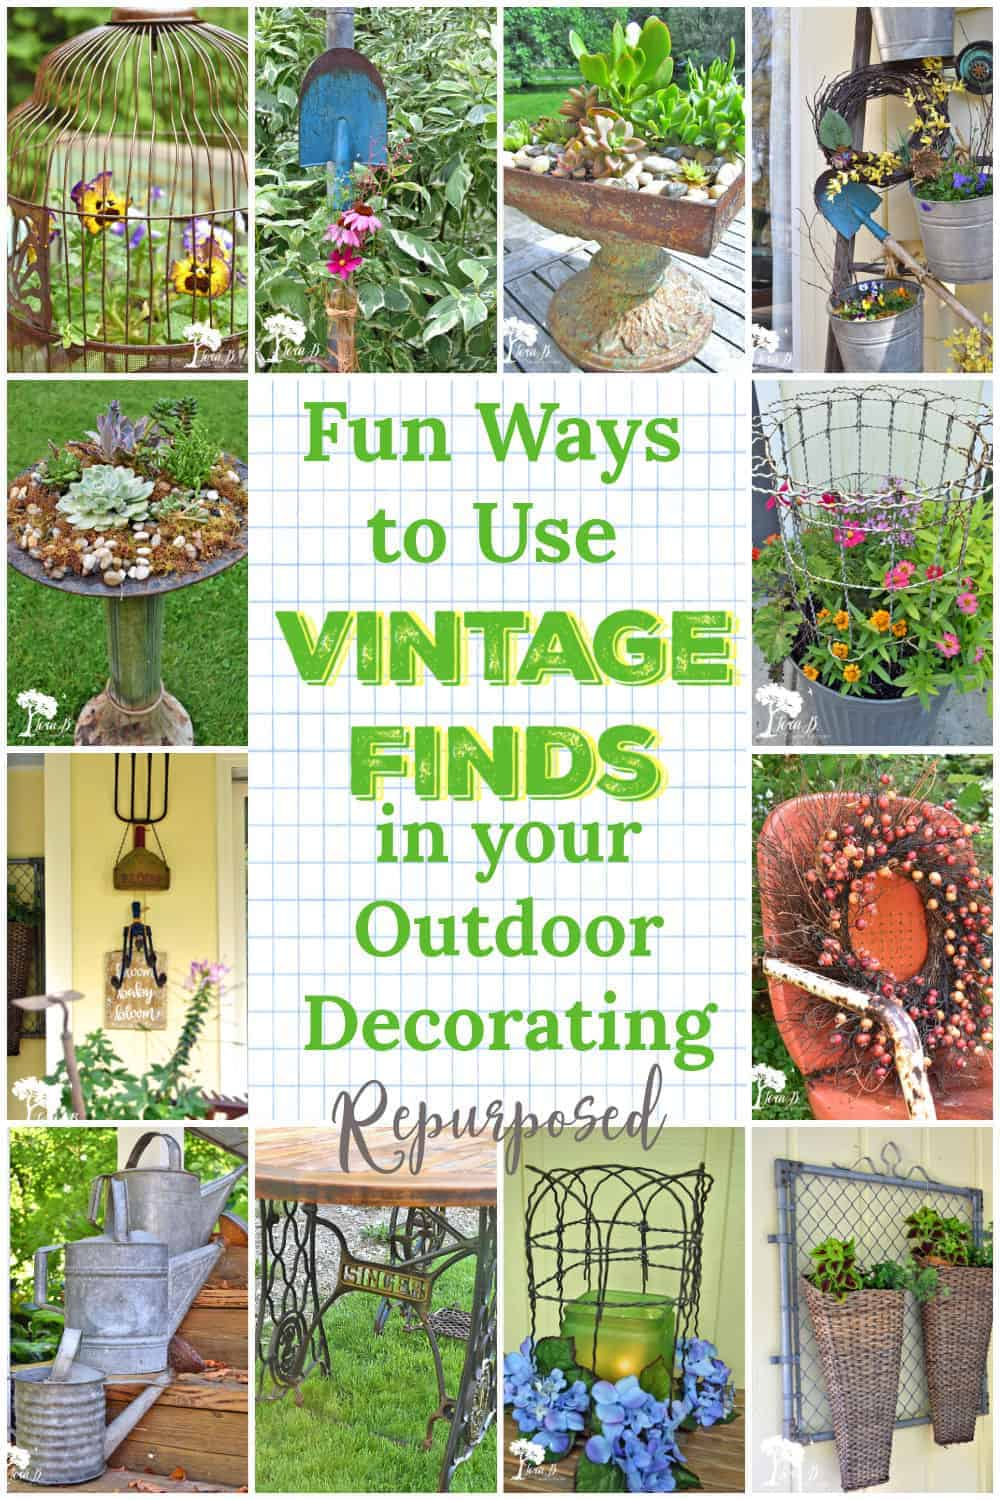 Fun Ways to Use Vintage Finds in your Outdoor Decorating